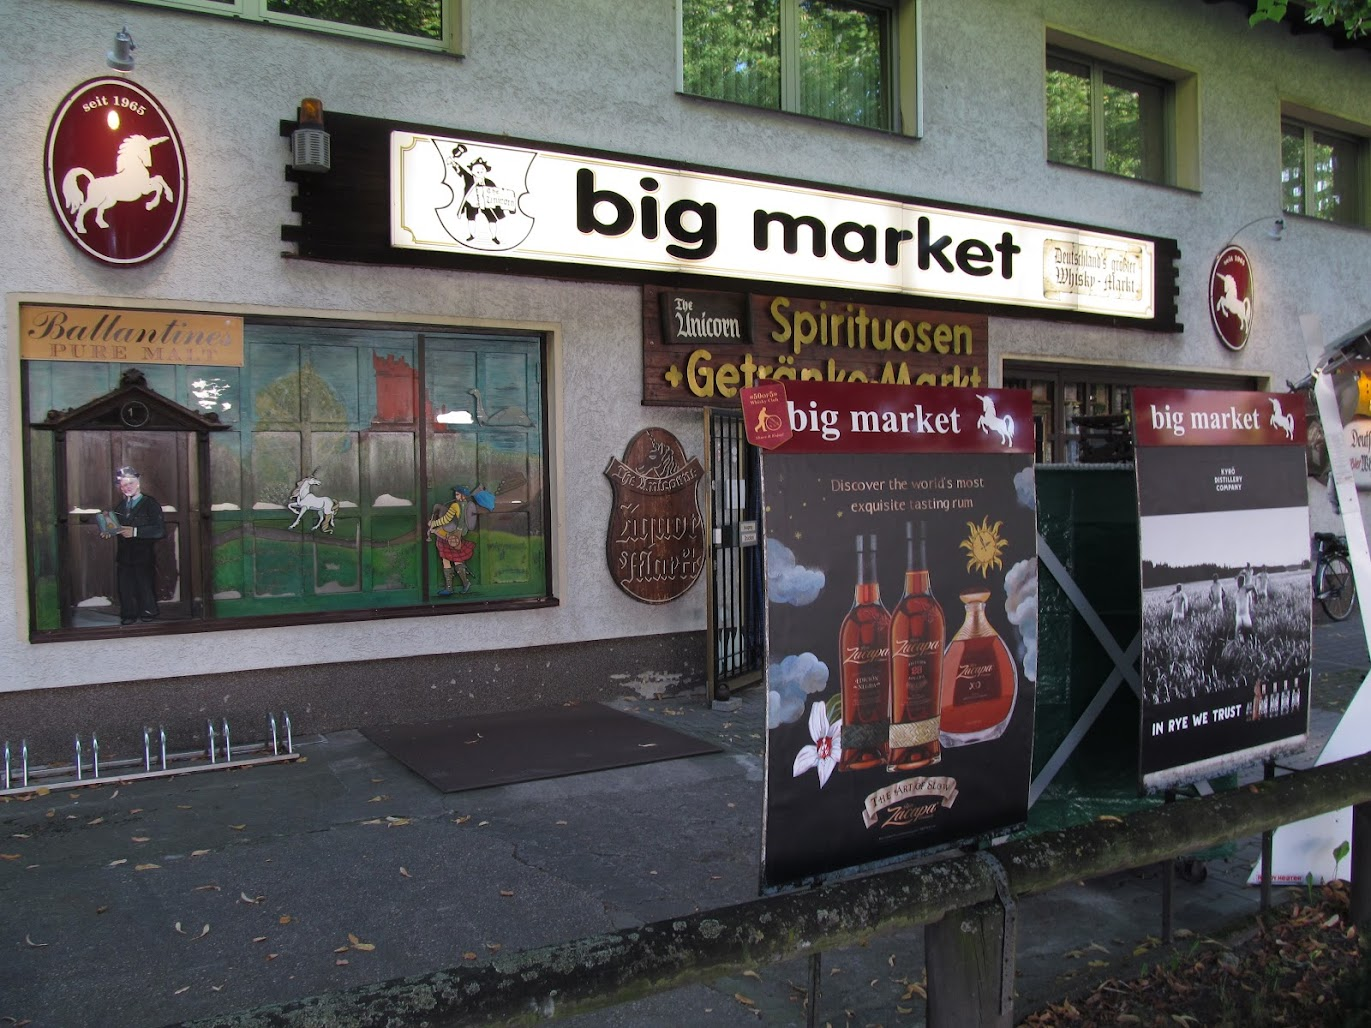 Big Market, Berlin